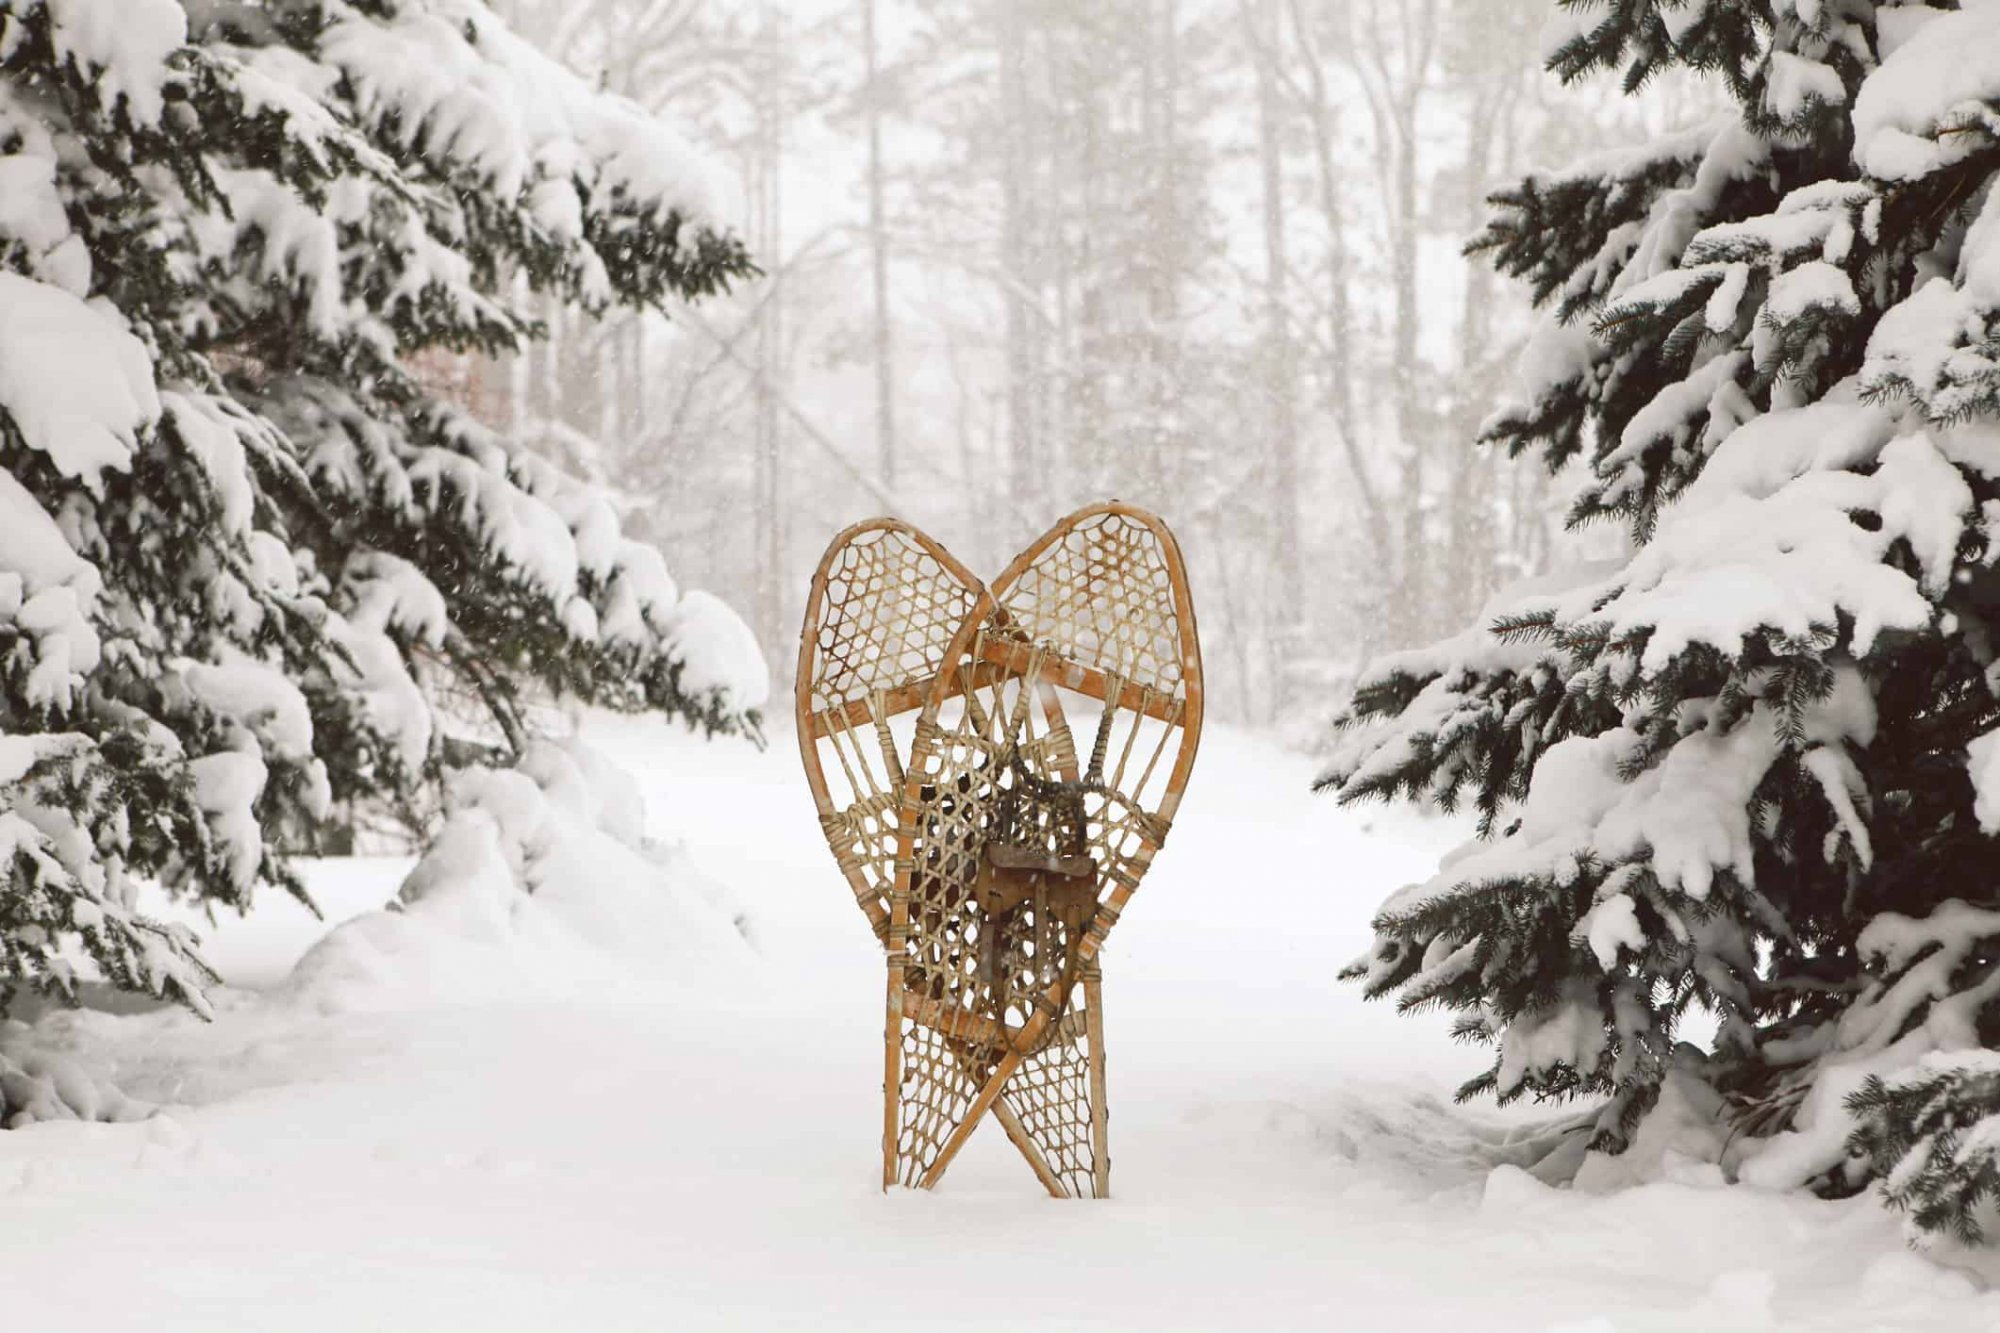 Snowshoe The Catskills | Where To Rent Snowshoes photo